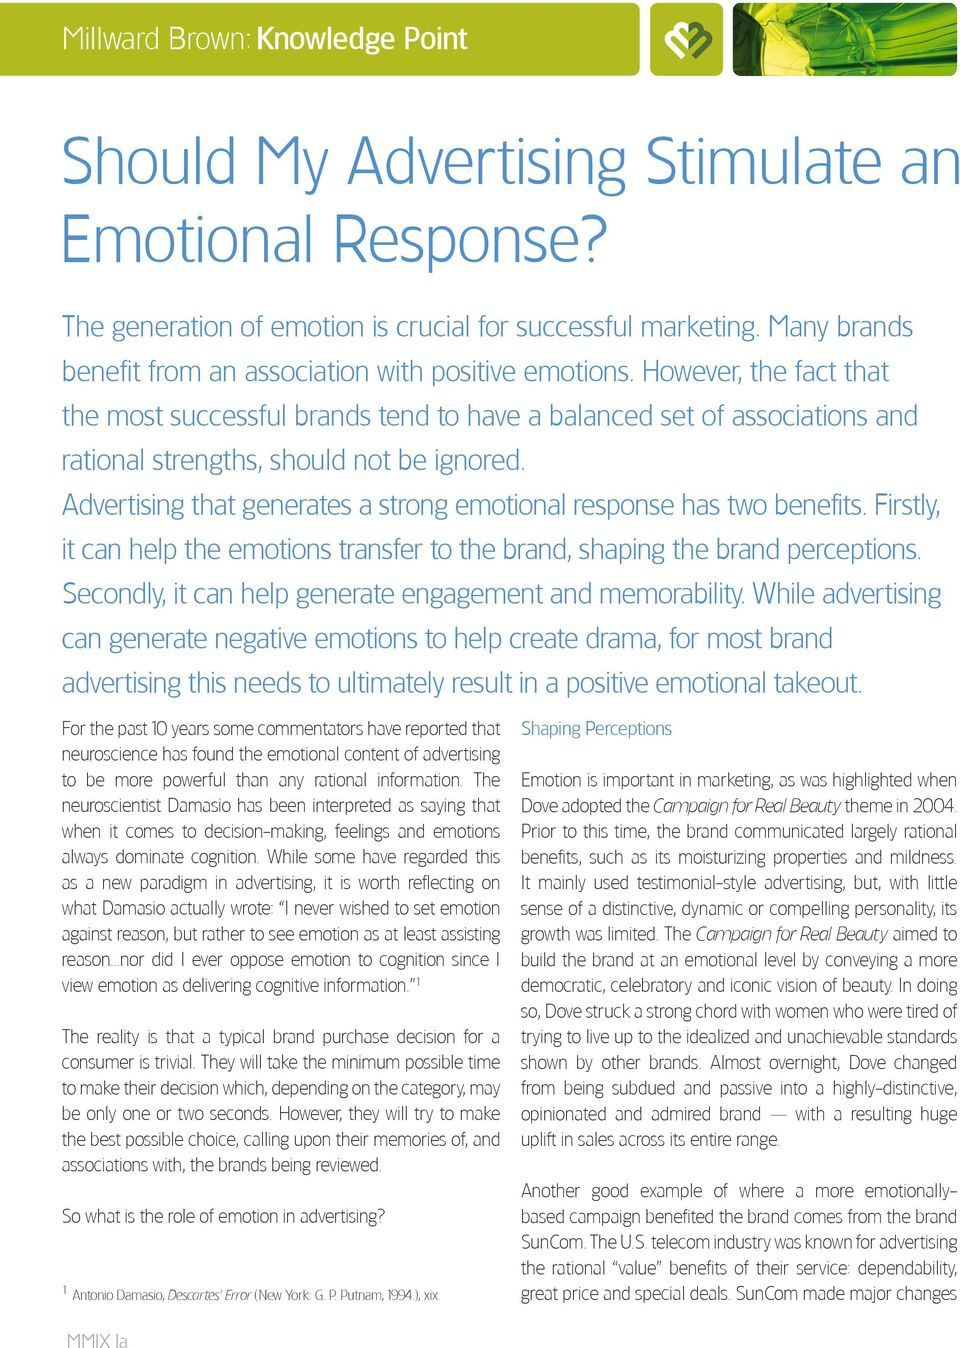 Advertising that generates a strong emotional response has two benefits. Firstly, it can help the emotions transfer to the brand, shaping the brand perceptions.